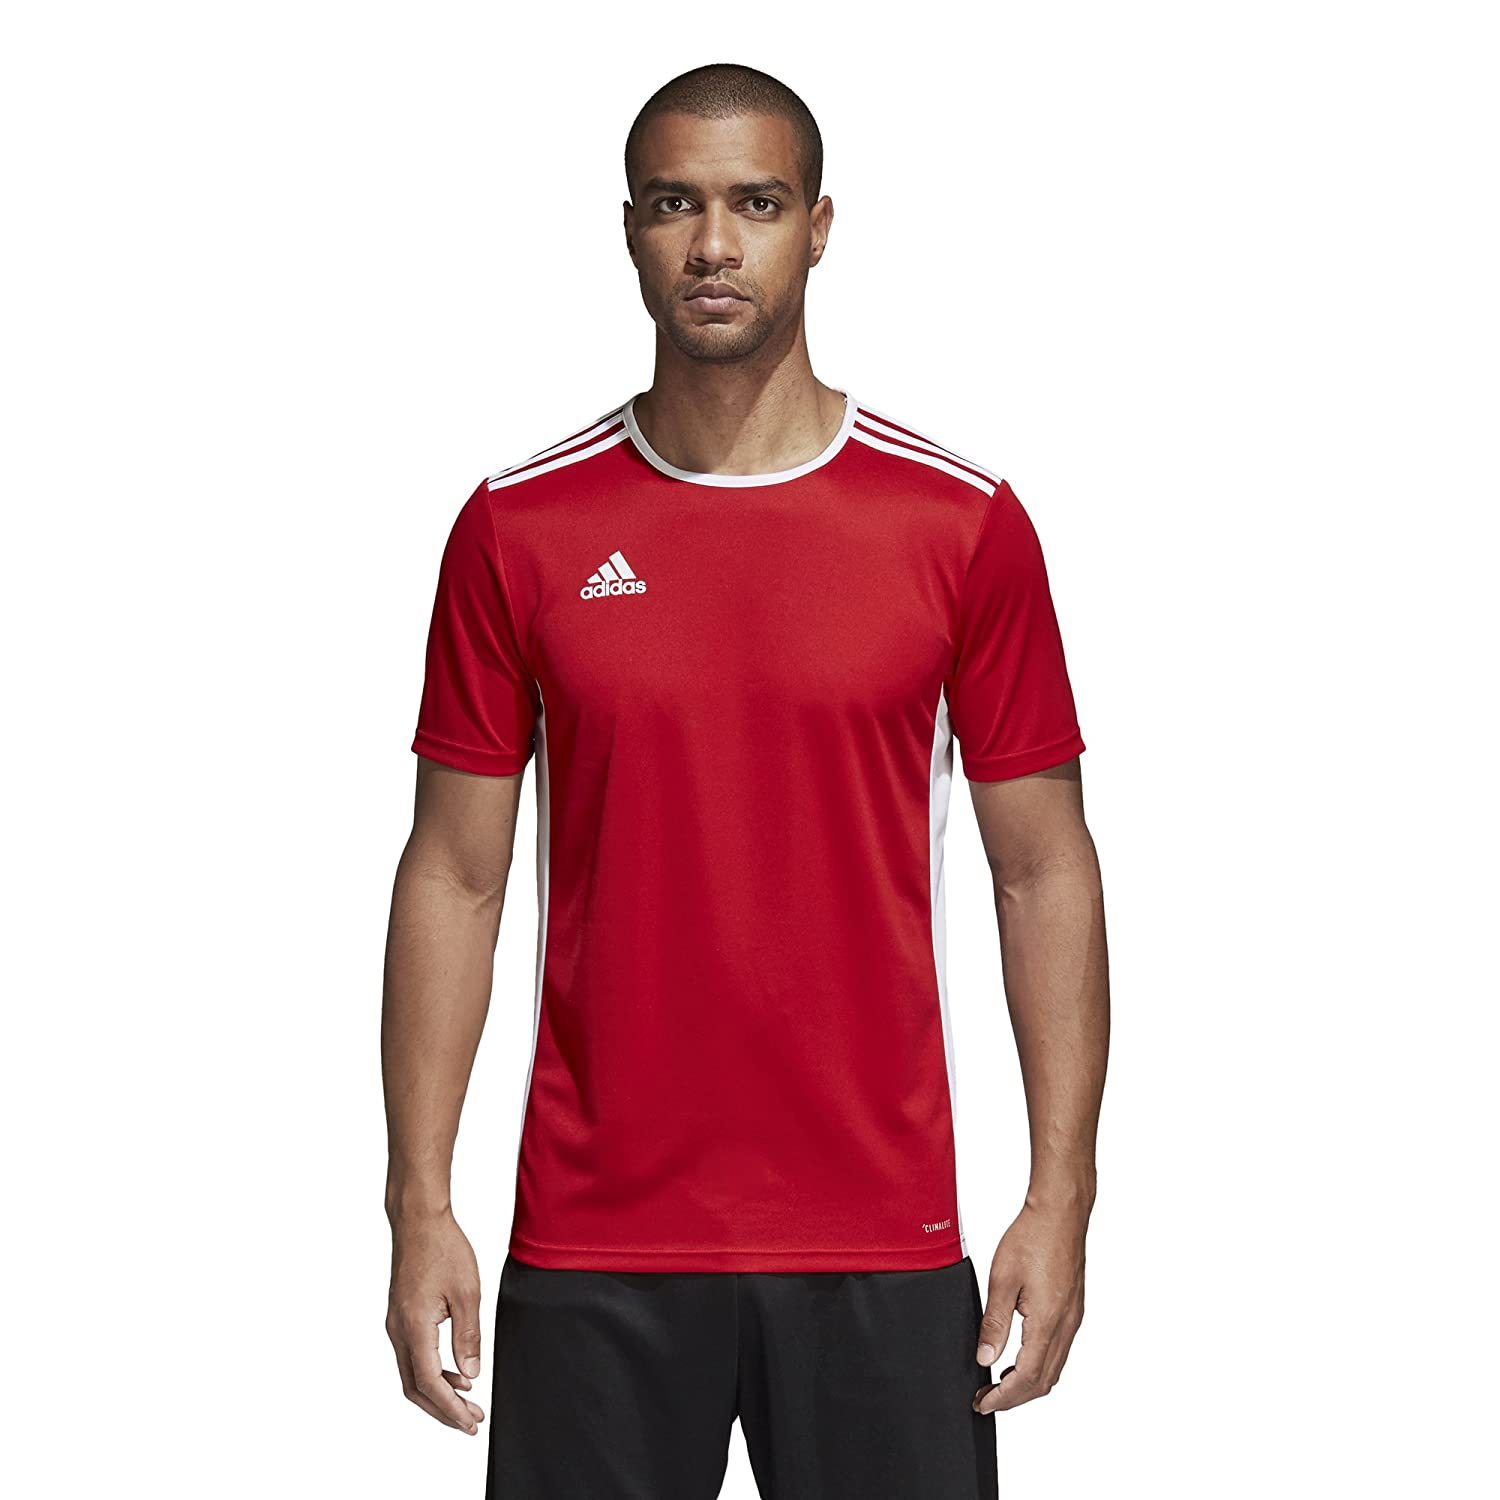 Adidas エントラーダ ジャージー メンズ サッカー 18 B071GX443P XX-Large|Power Red/White Power Red/White XX-Large